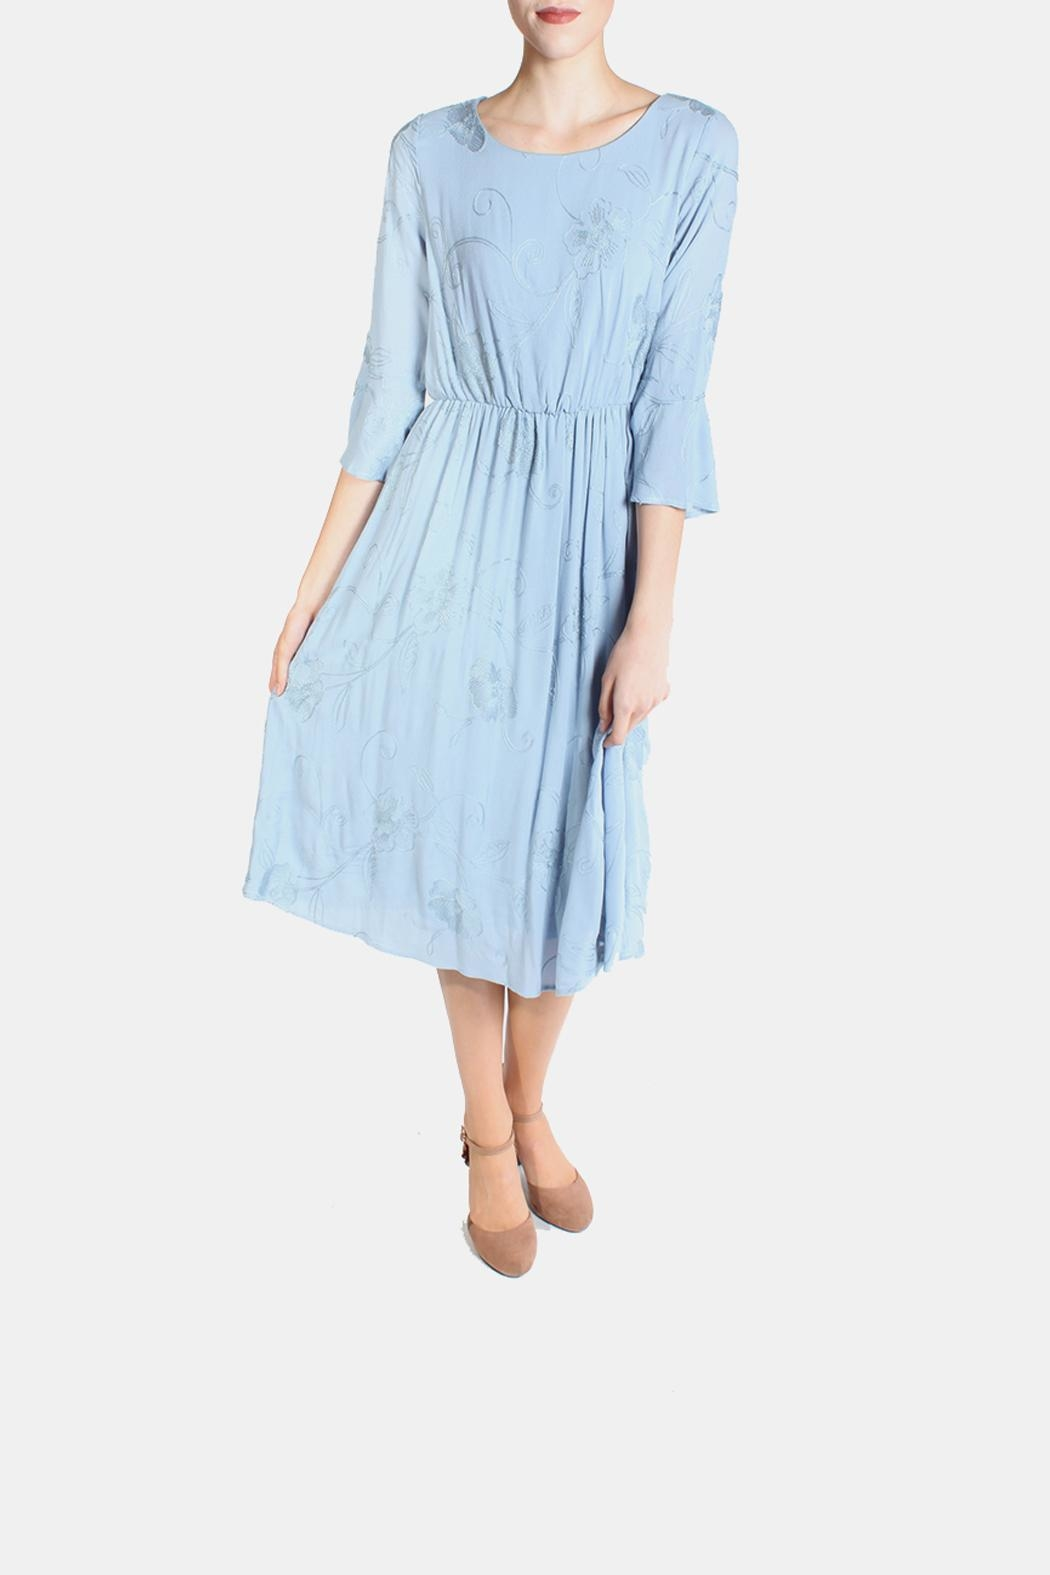 Le Lis Dreamy Blue Embroidered Dress - Main Image